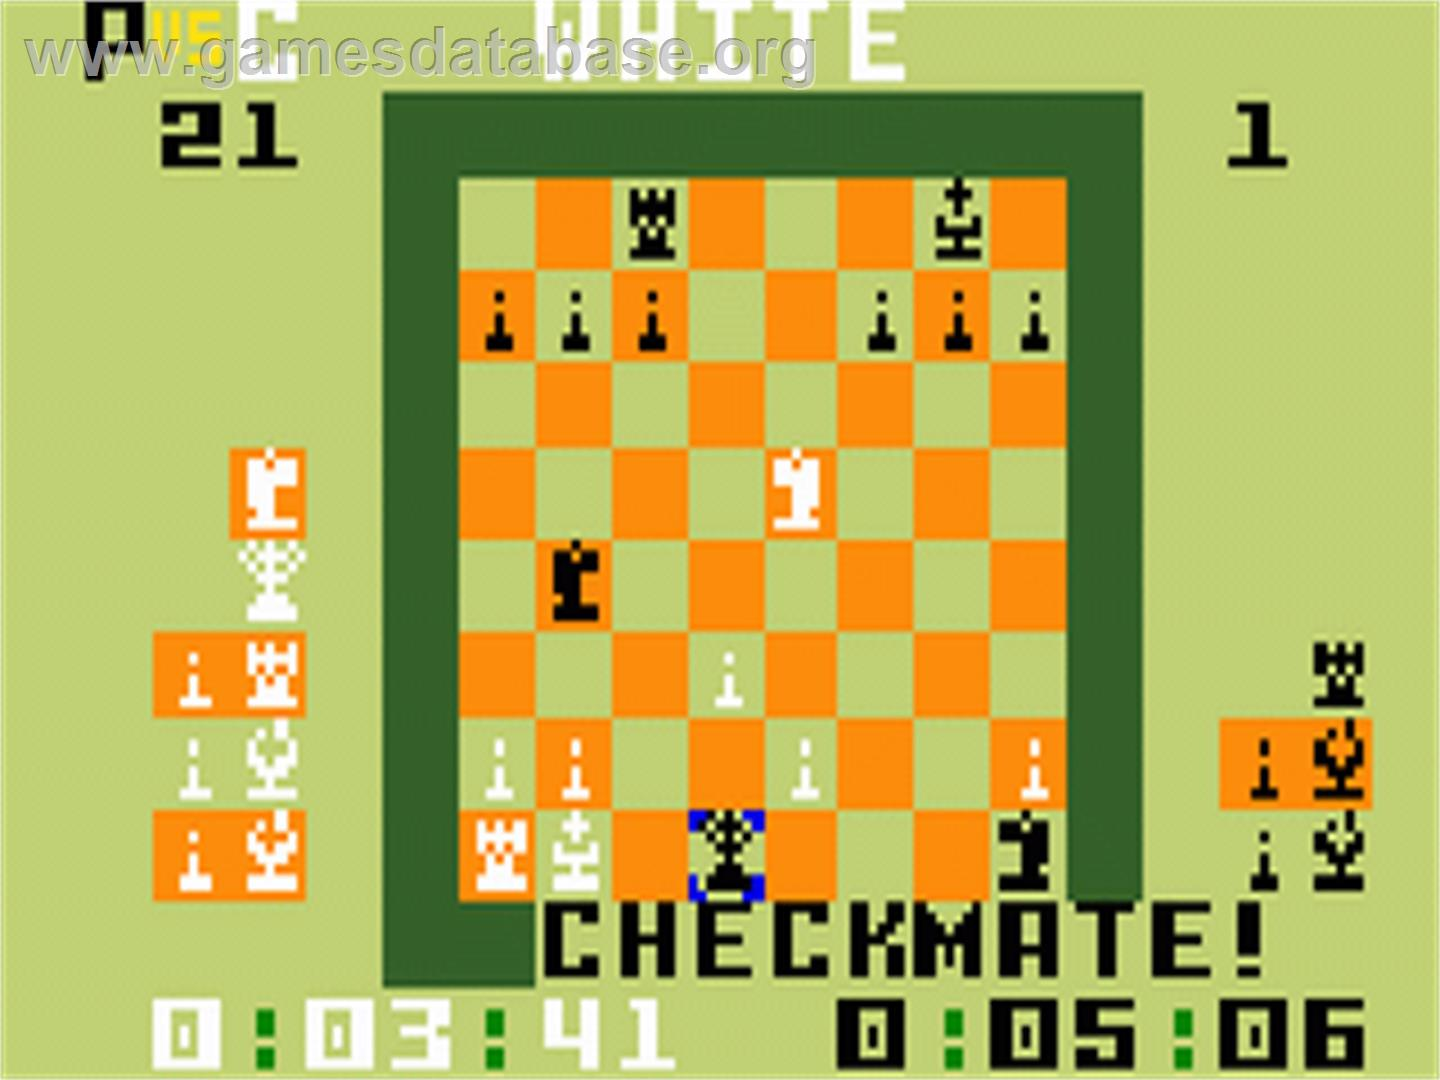 USCF_Chess_-_1981_-_Mattel_Electronics.j